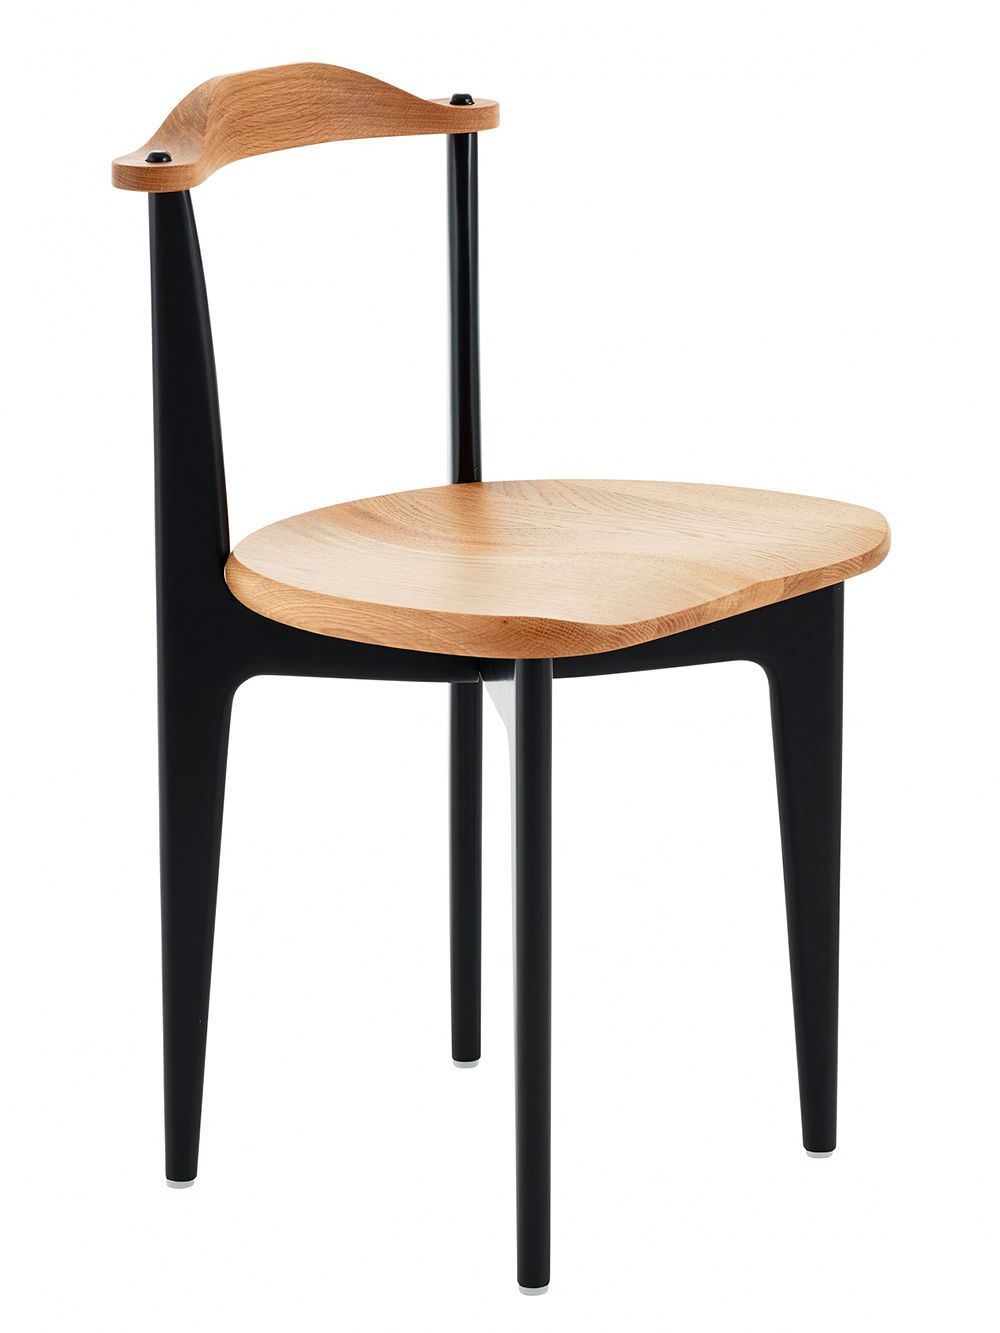 Swedese Thema chair